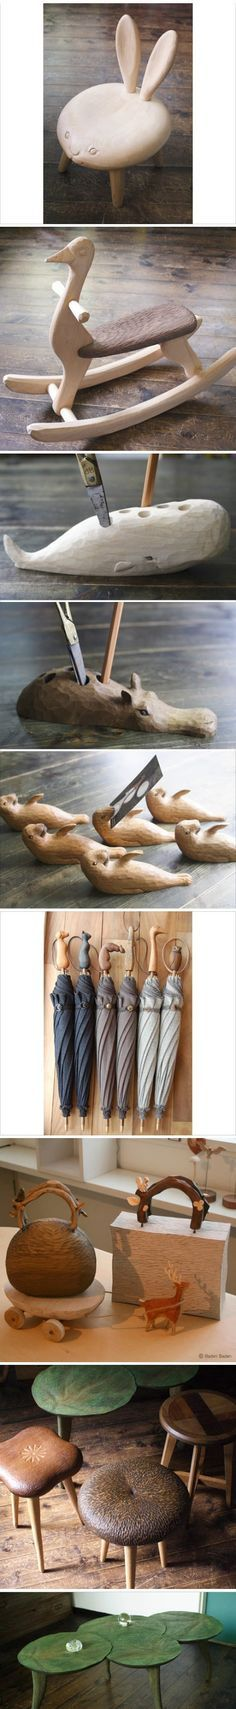 Best ideas about carvings on pinterest toys